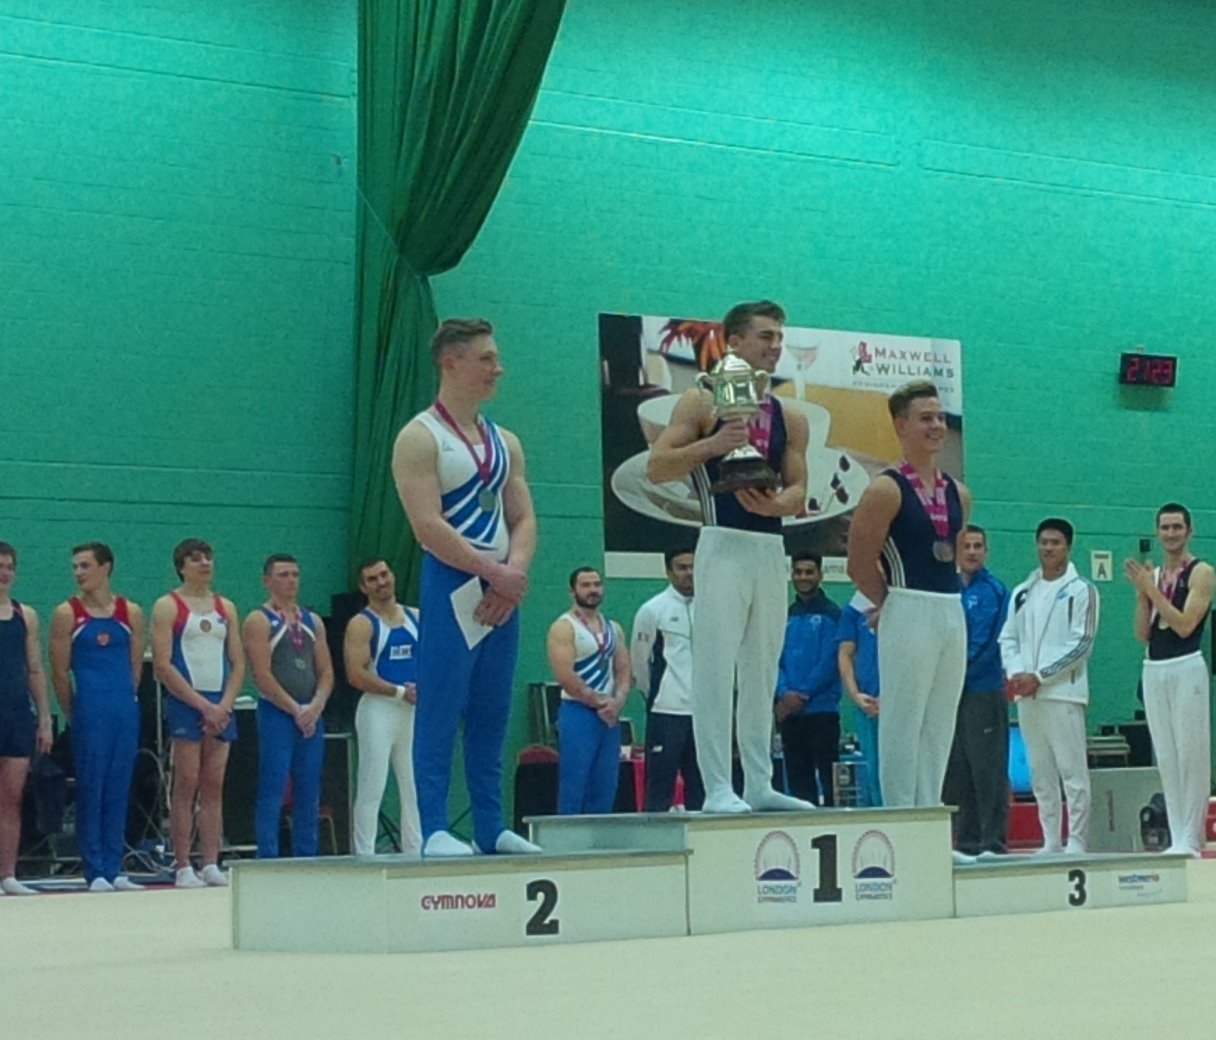 Max Whitlock - the 2015 Westminster Cup Champion